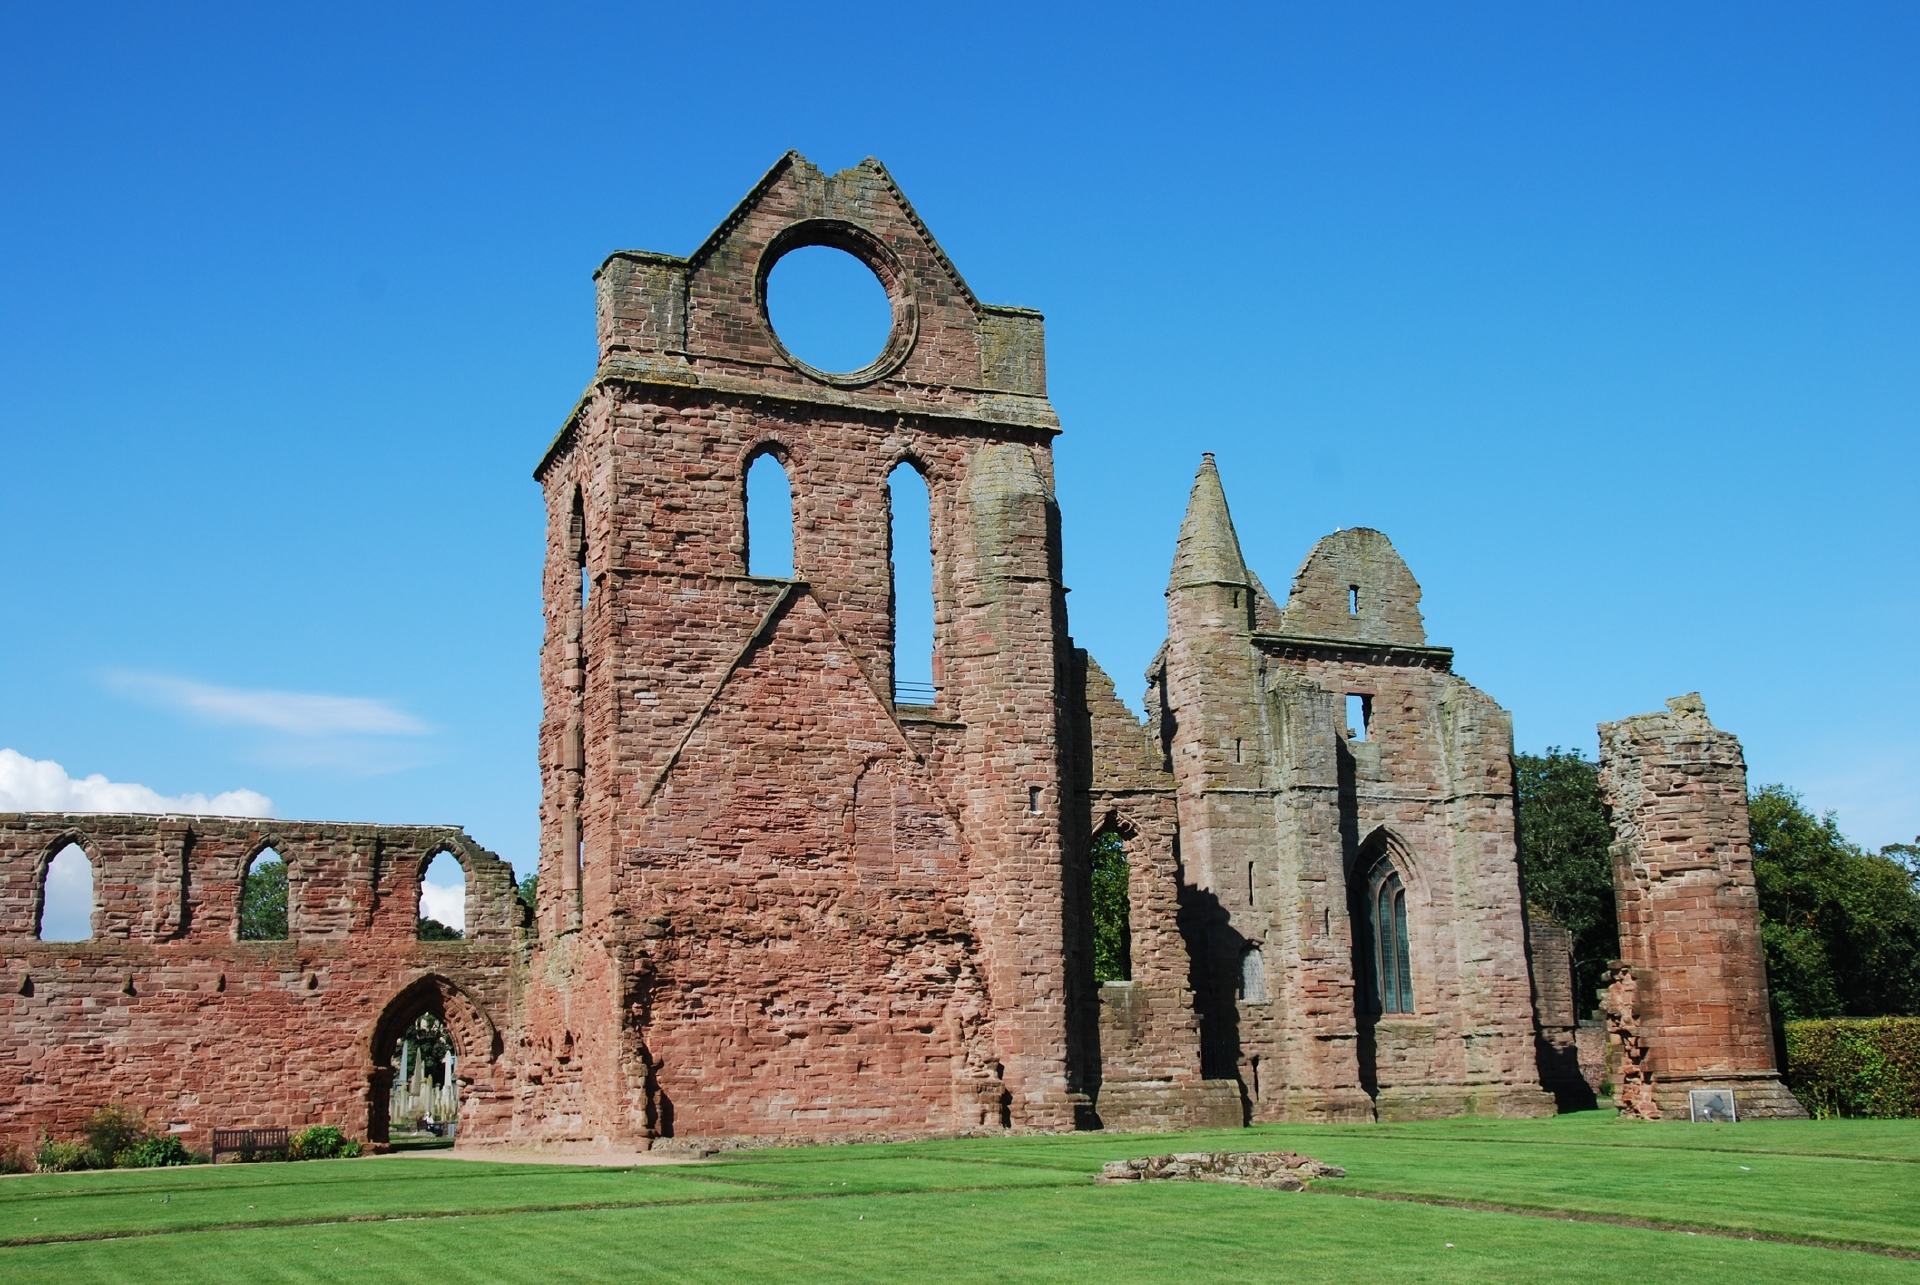 A view of the ruins of Arbroath abbey from the cloister